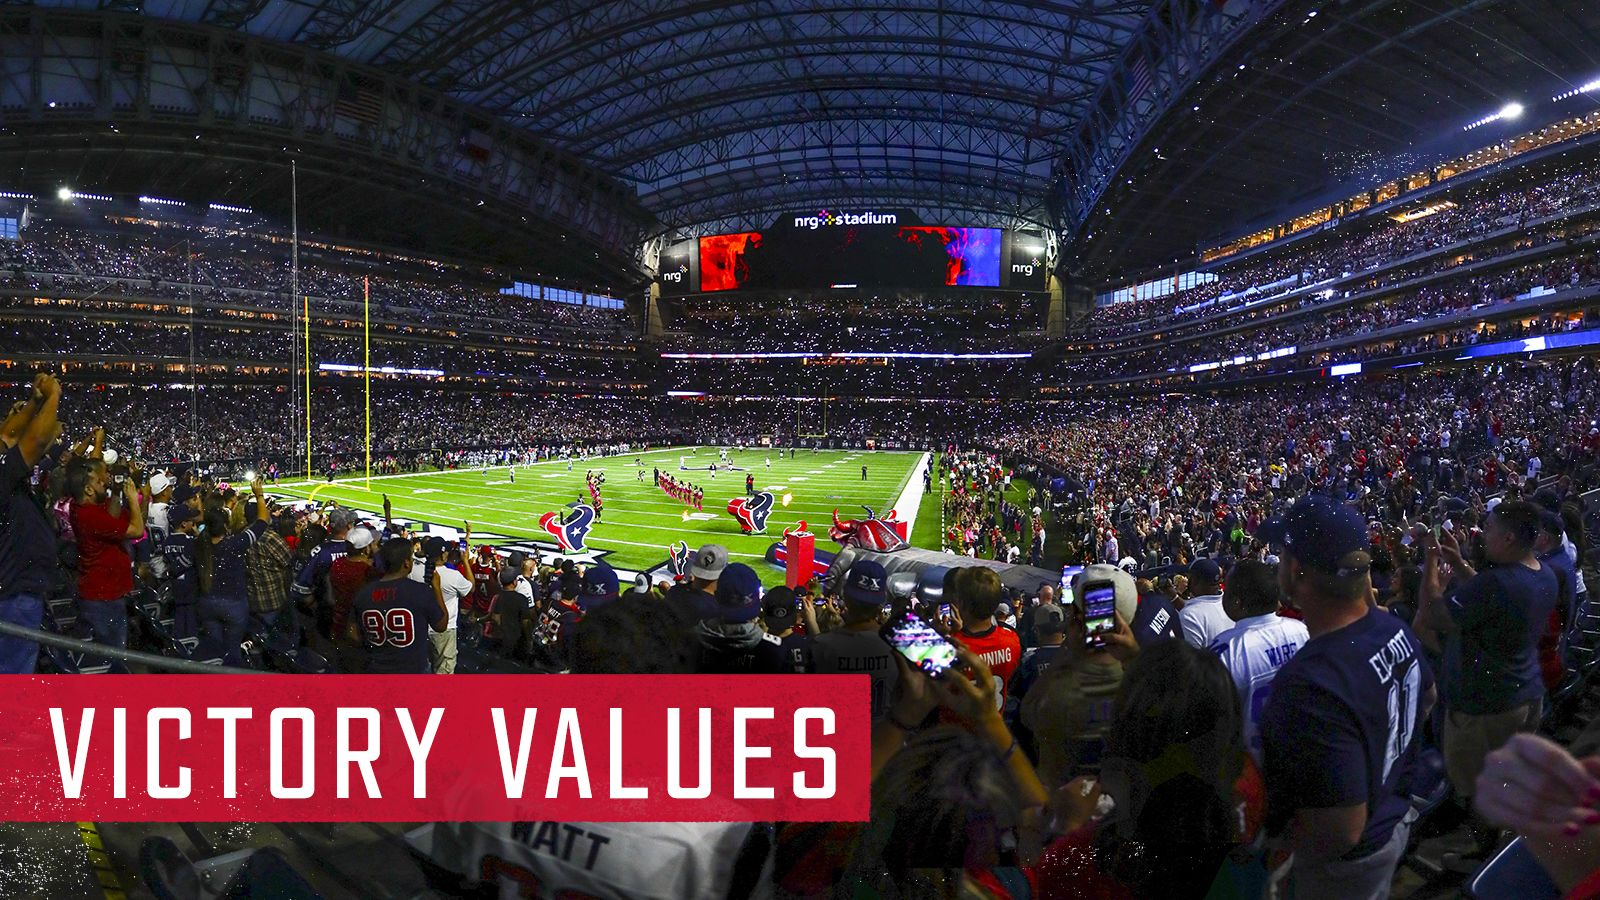 Victory Values